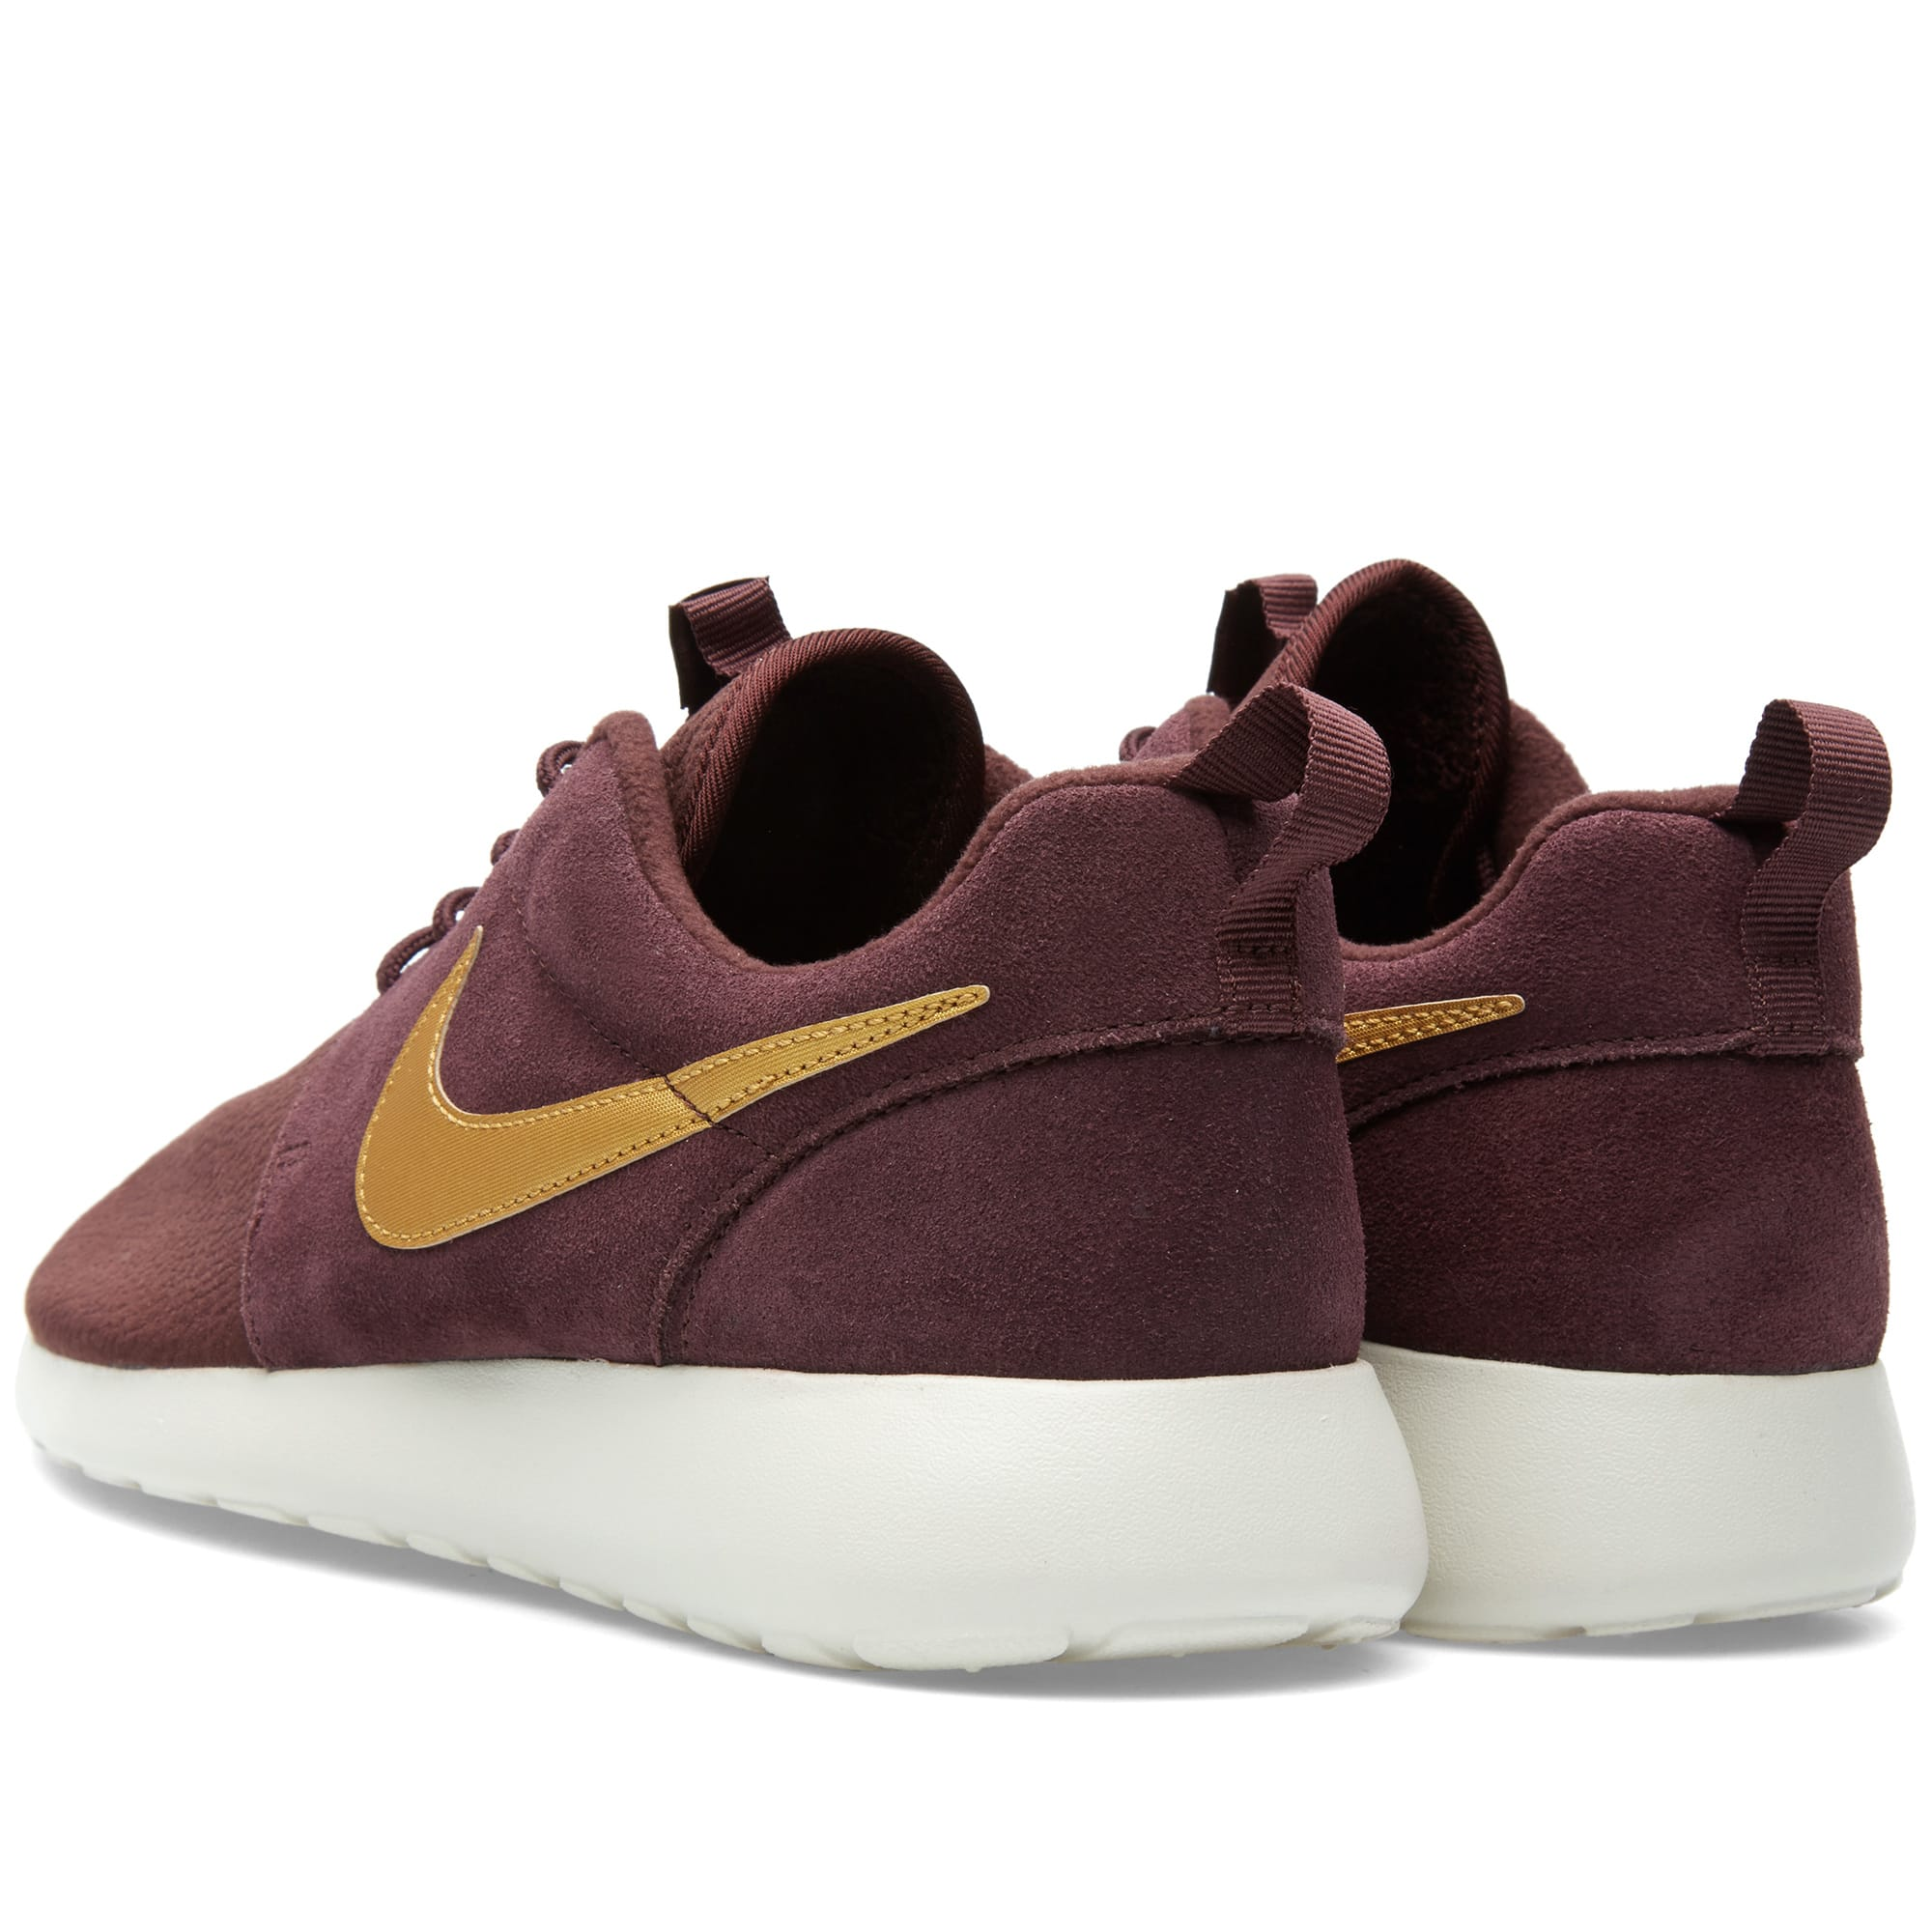 new style b5071 709c7 Nike Roshe One Suede Mahogany   Metallic Gold   END.